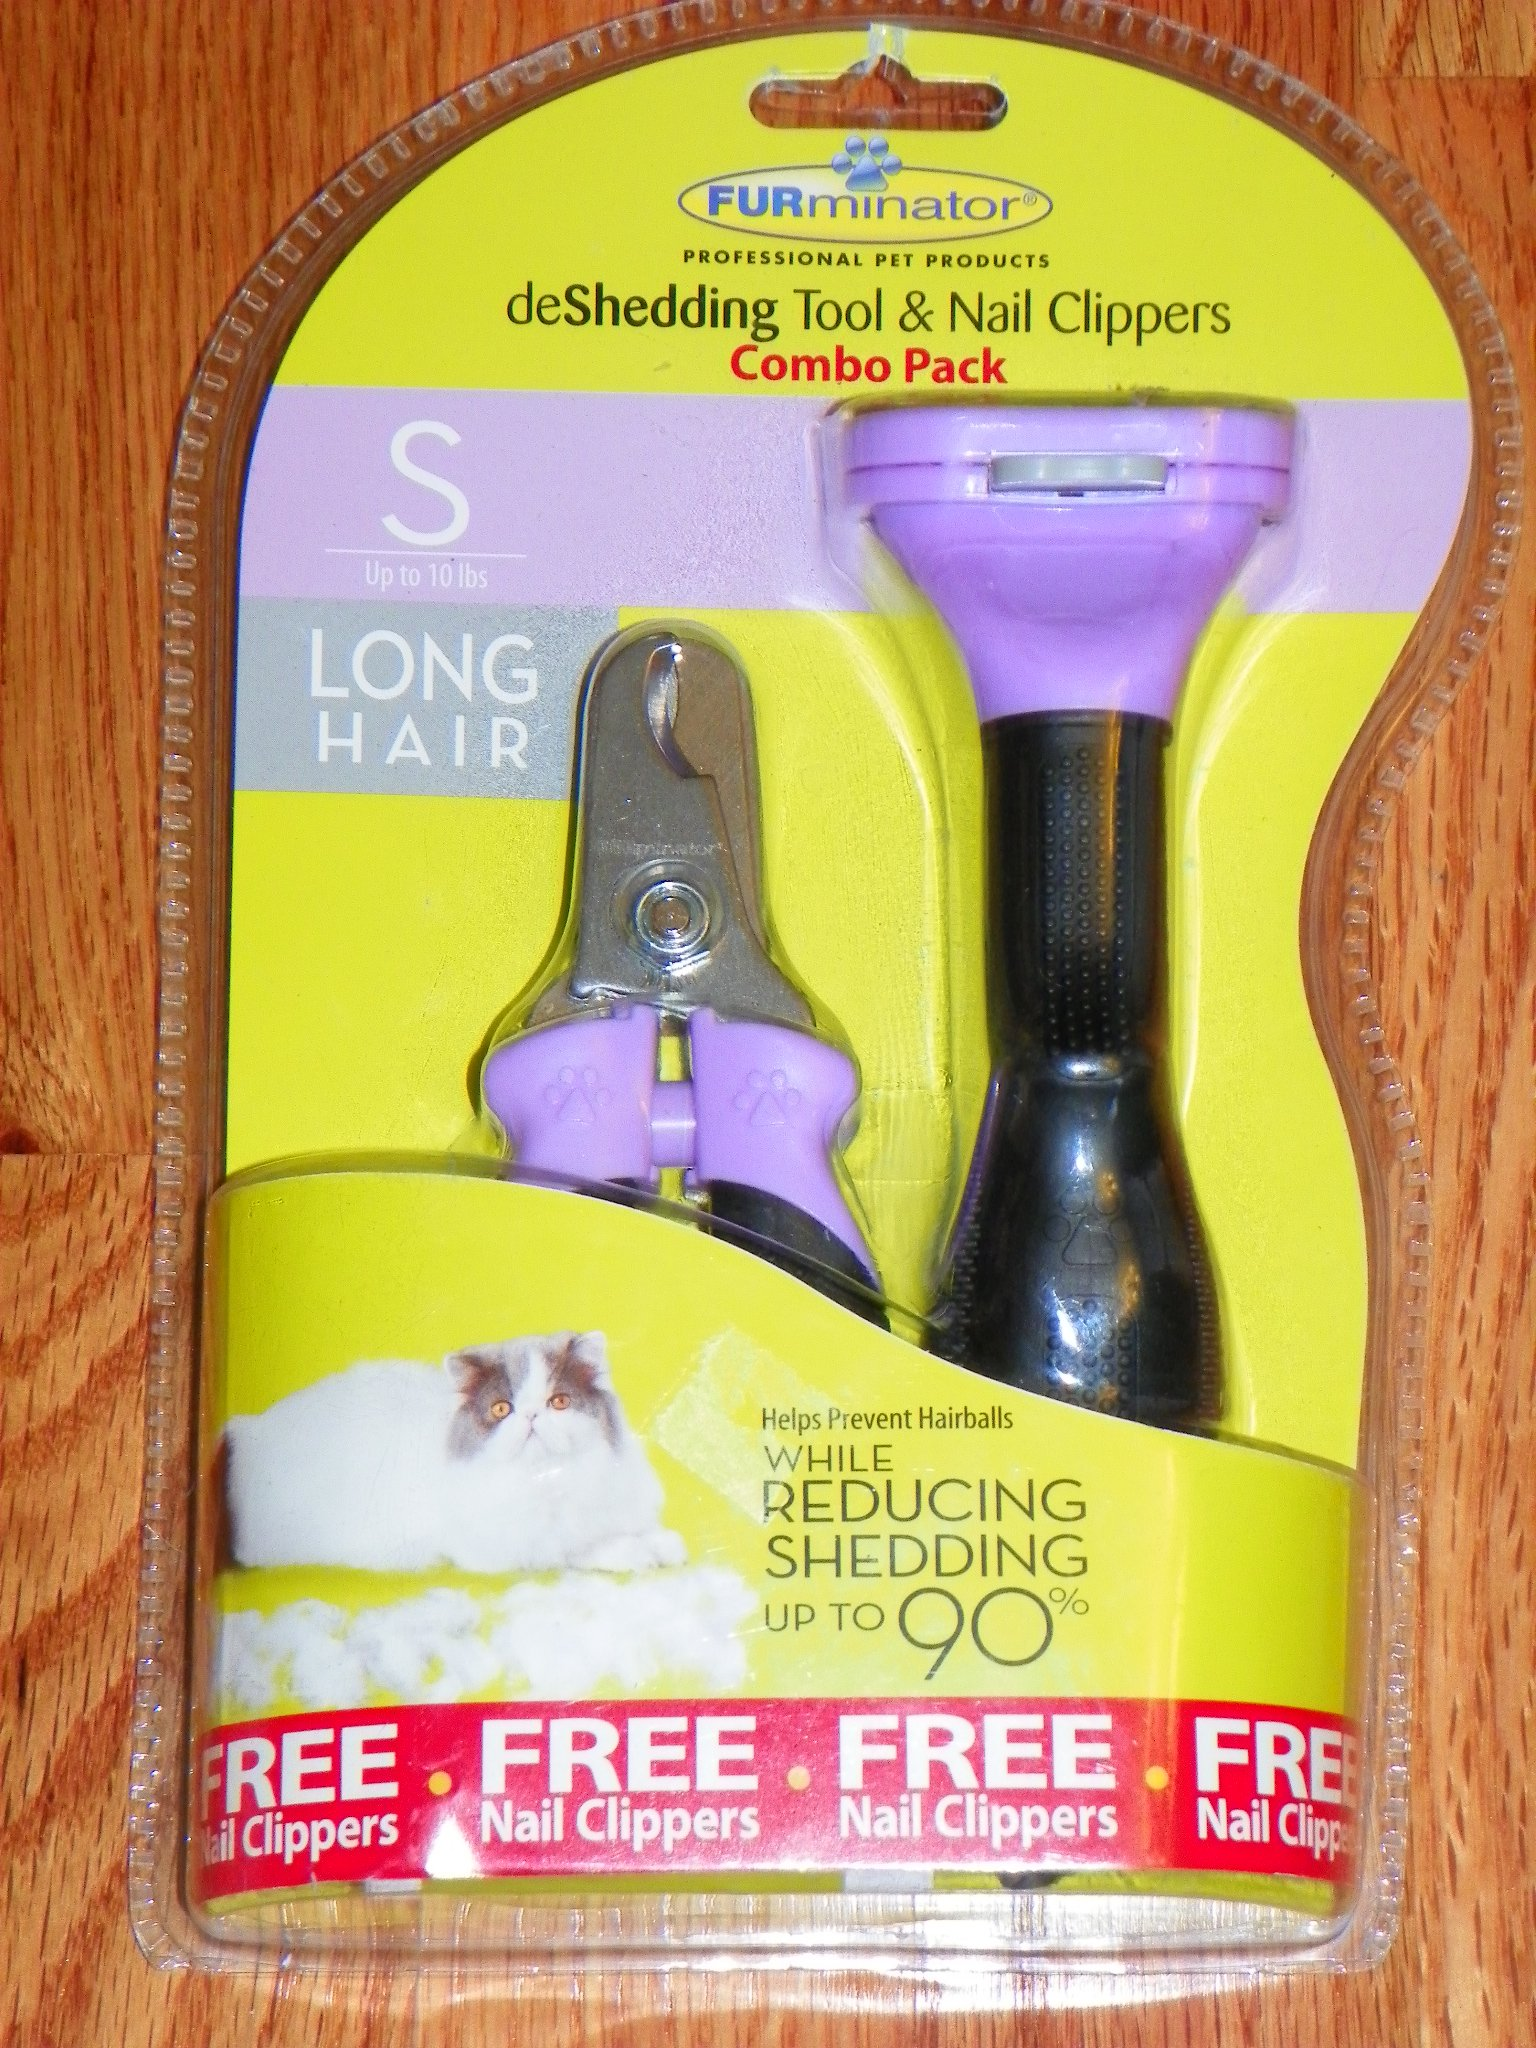 Furminator deShedding Tool & Nail Clippers Combo Pack for Cats: Small (up to 10 lbs), Long Hair